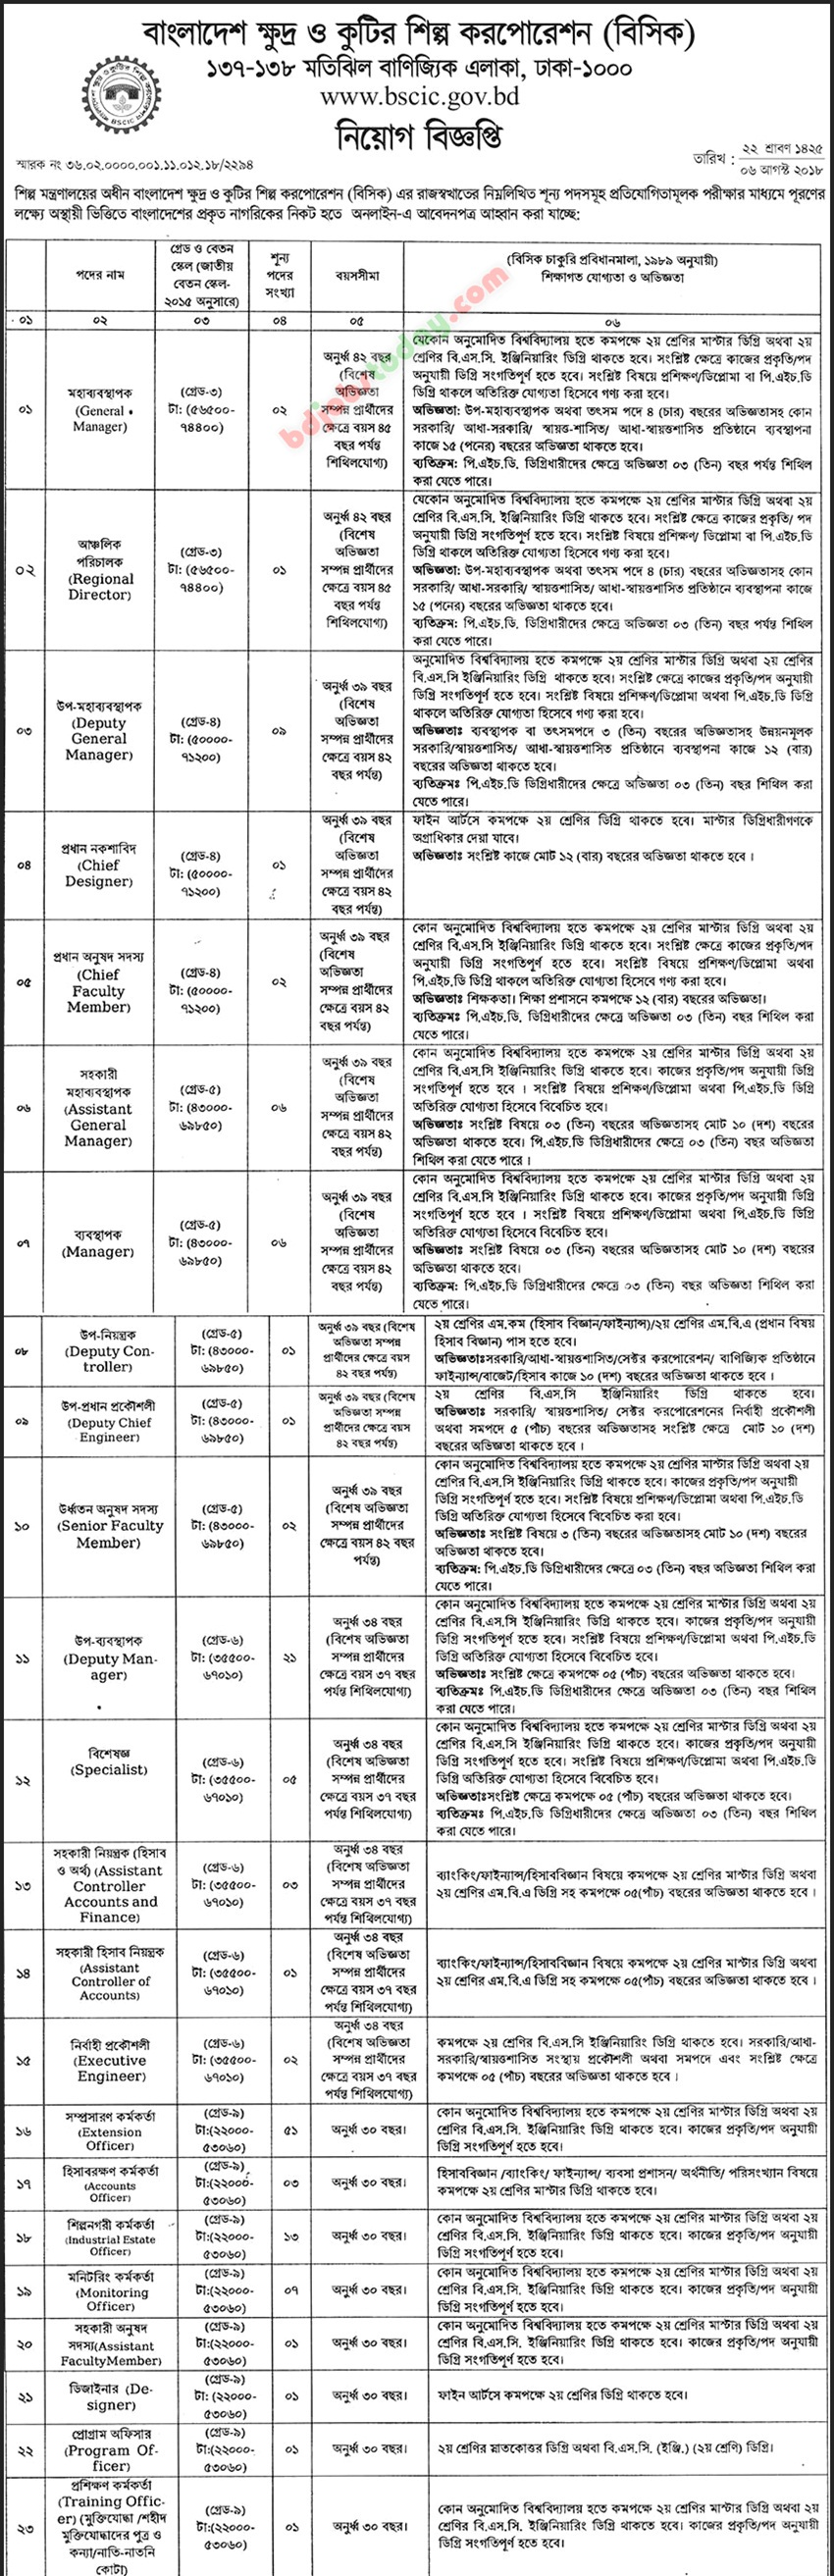 Bangladesh Small and Cottage Industries Corporation-BSCIC jobs